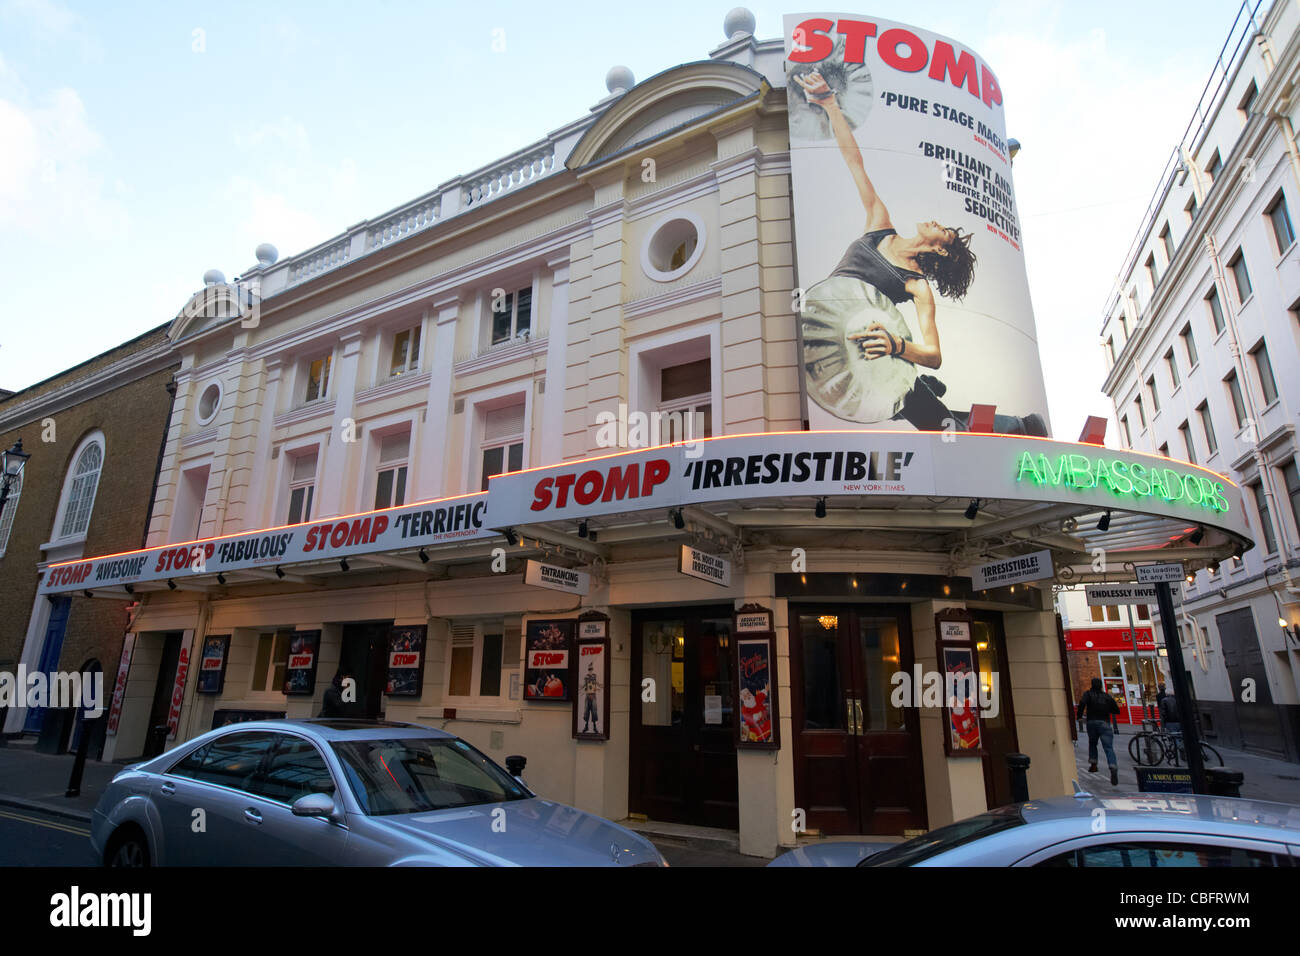 the ambassadors theatre showing stomp in theatreland west end london england uk united kingdom - Stock Image